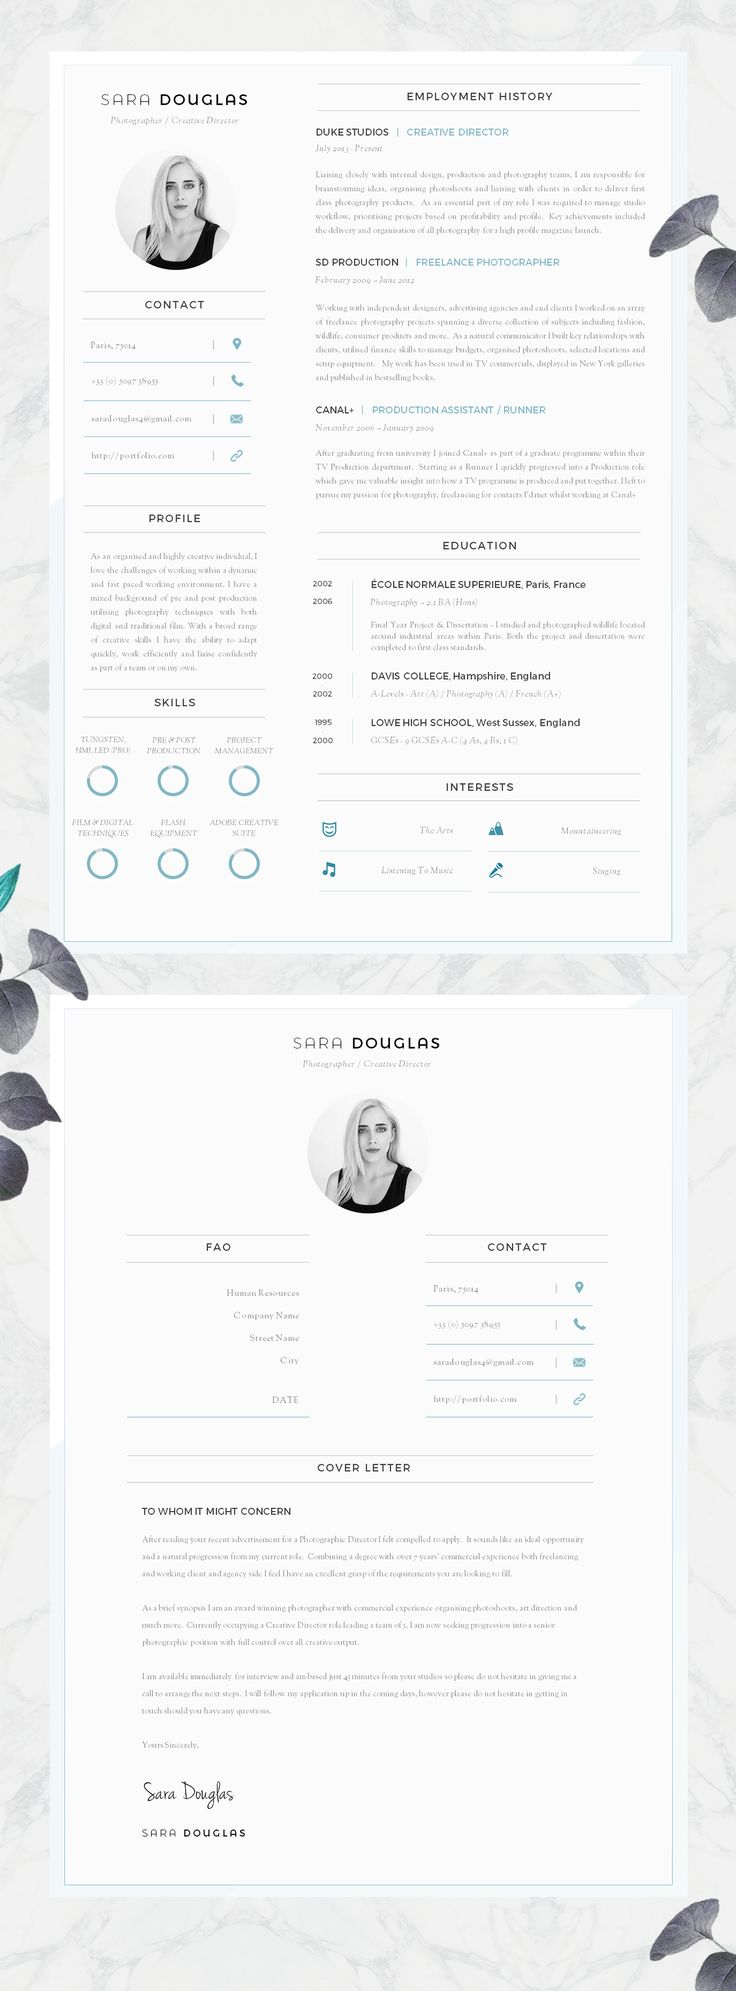 Modern CV Design | Resume Design   Must Do Career Project #Etsy #CV #